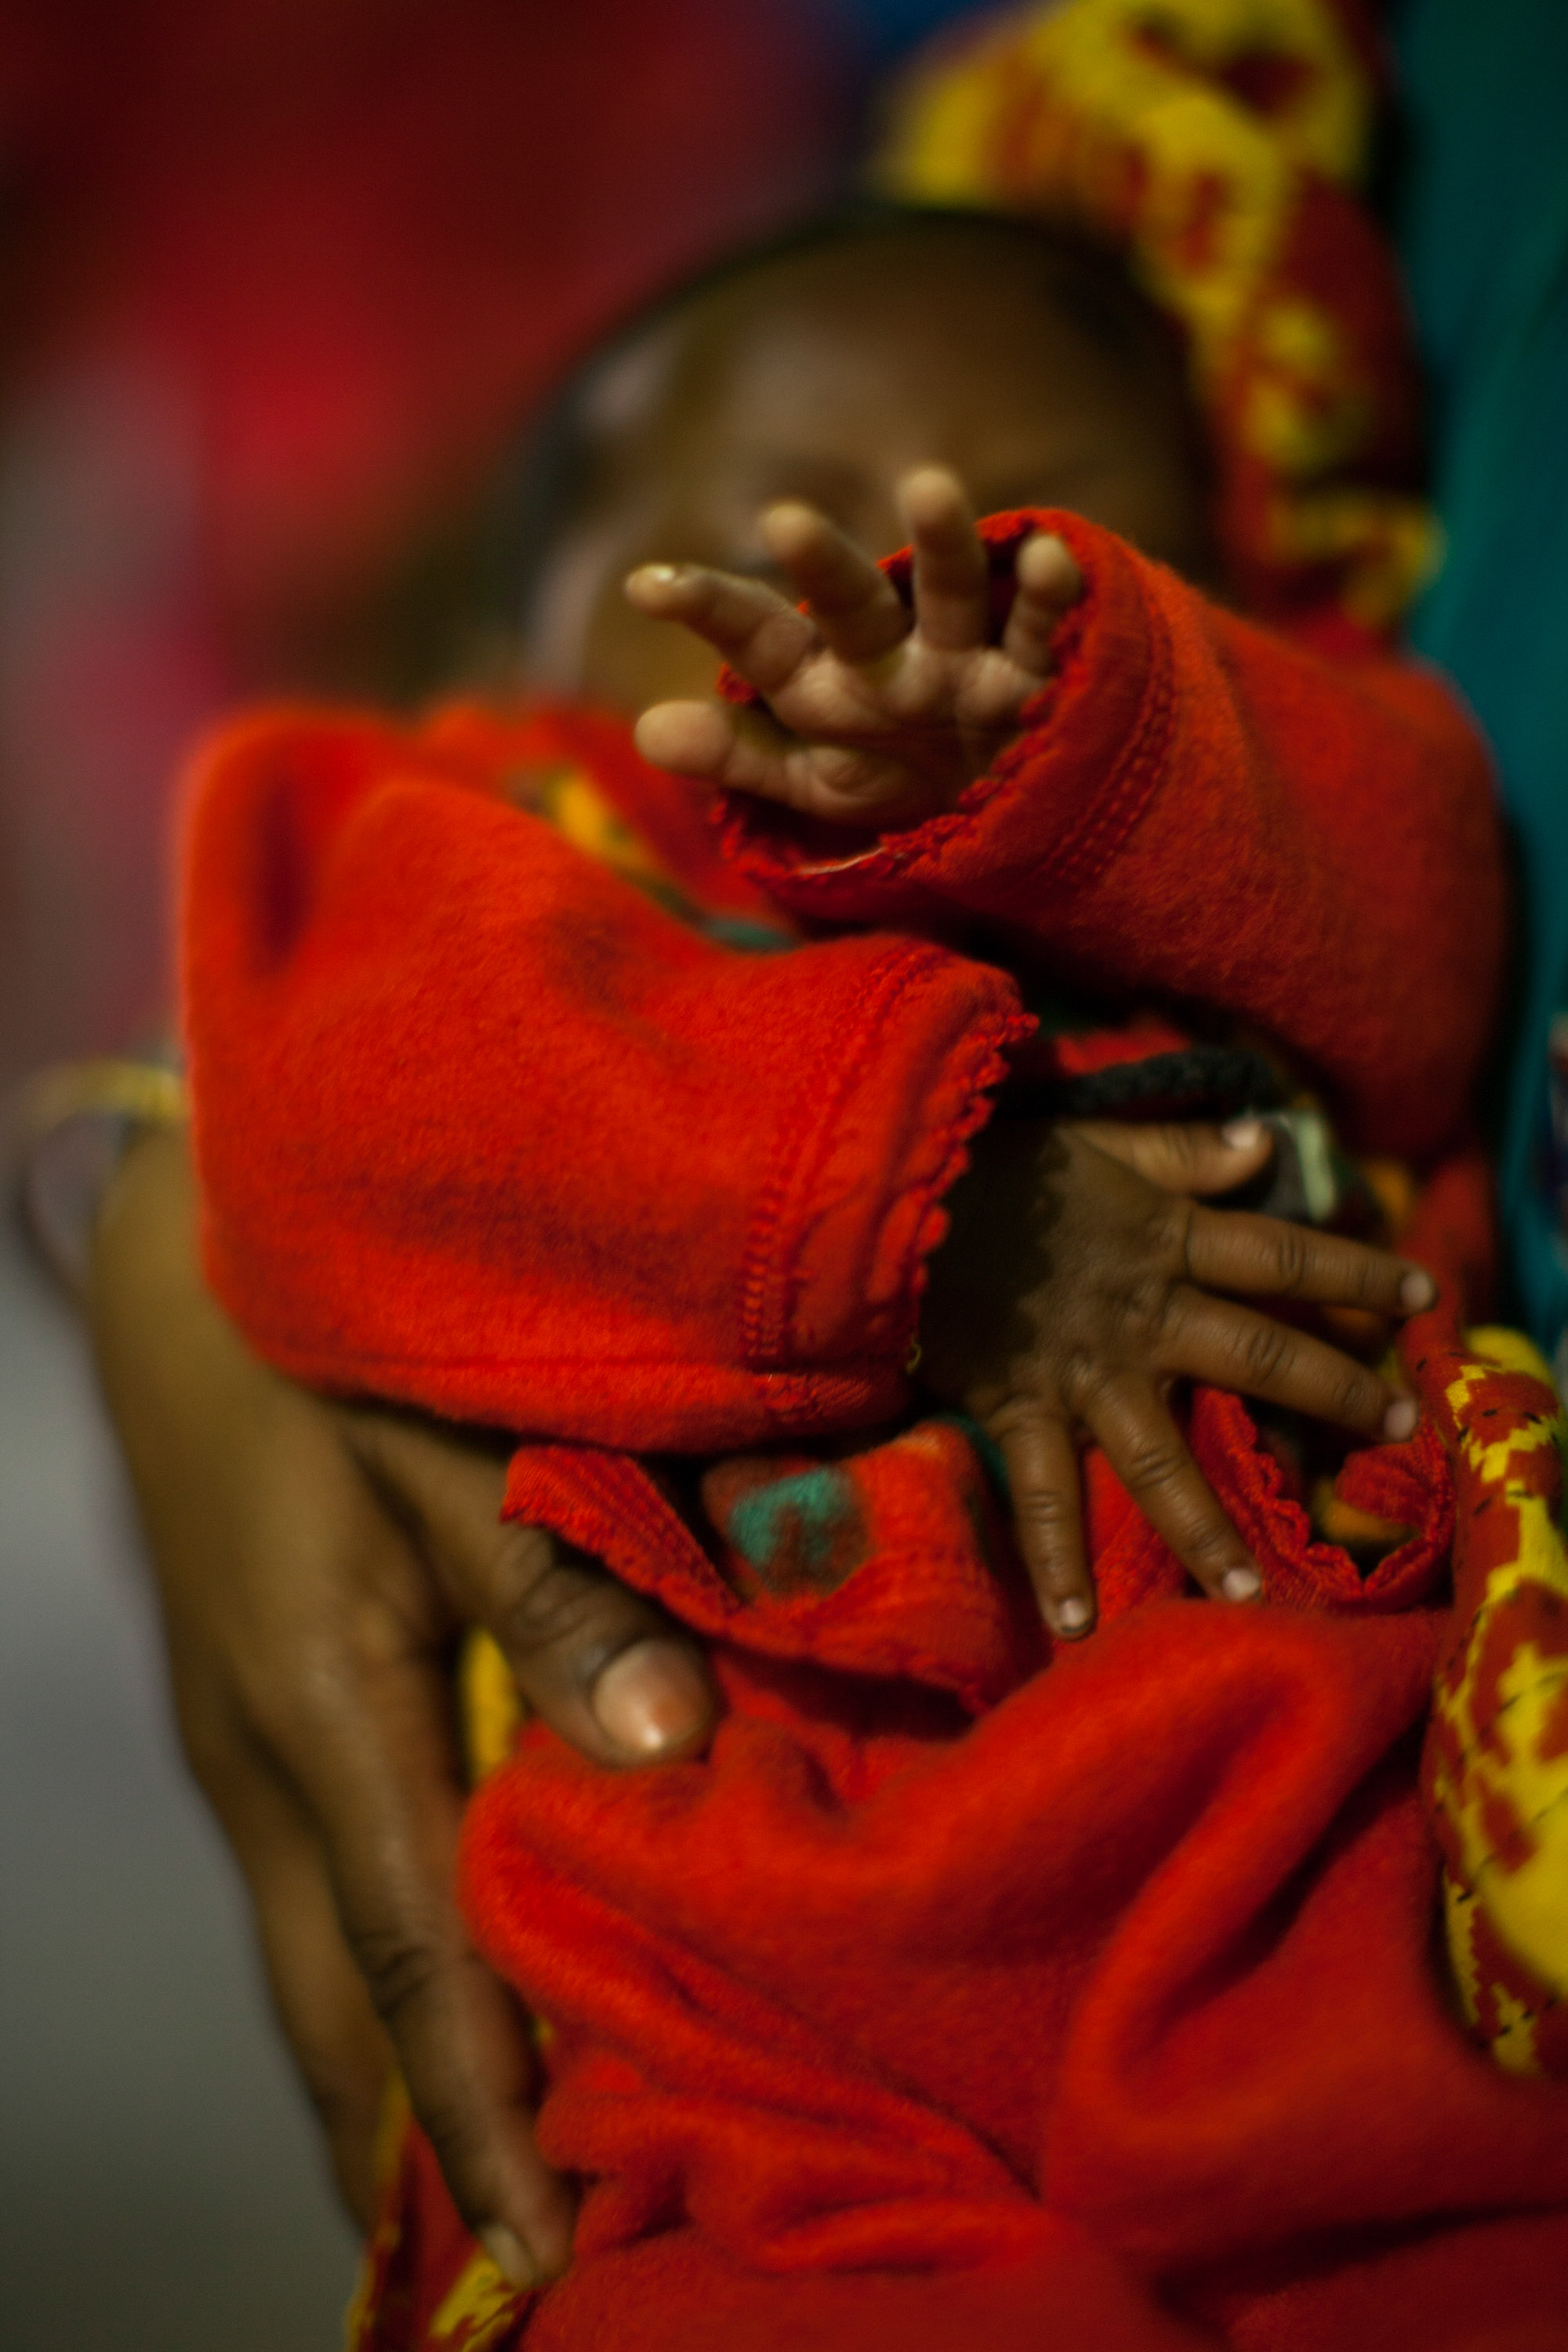 A baby's hands covering her face to comply with our child protection policy.